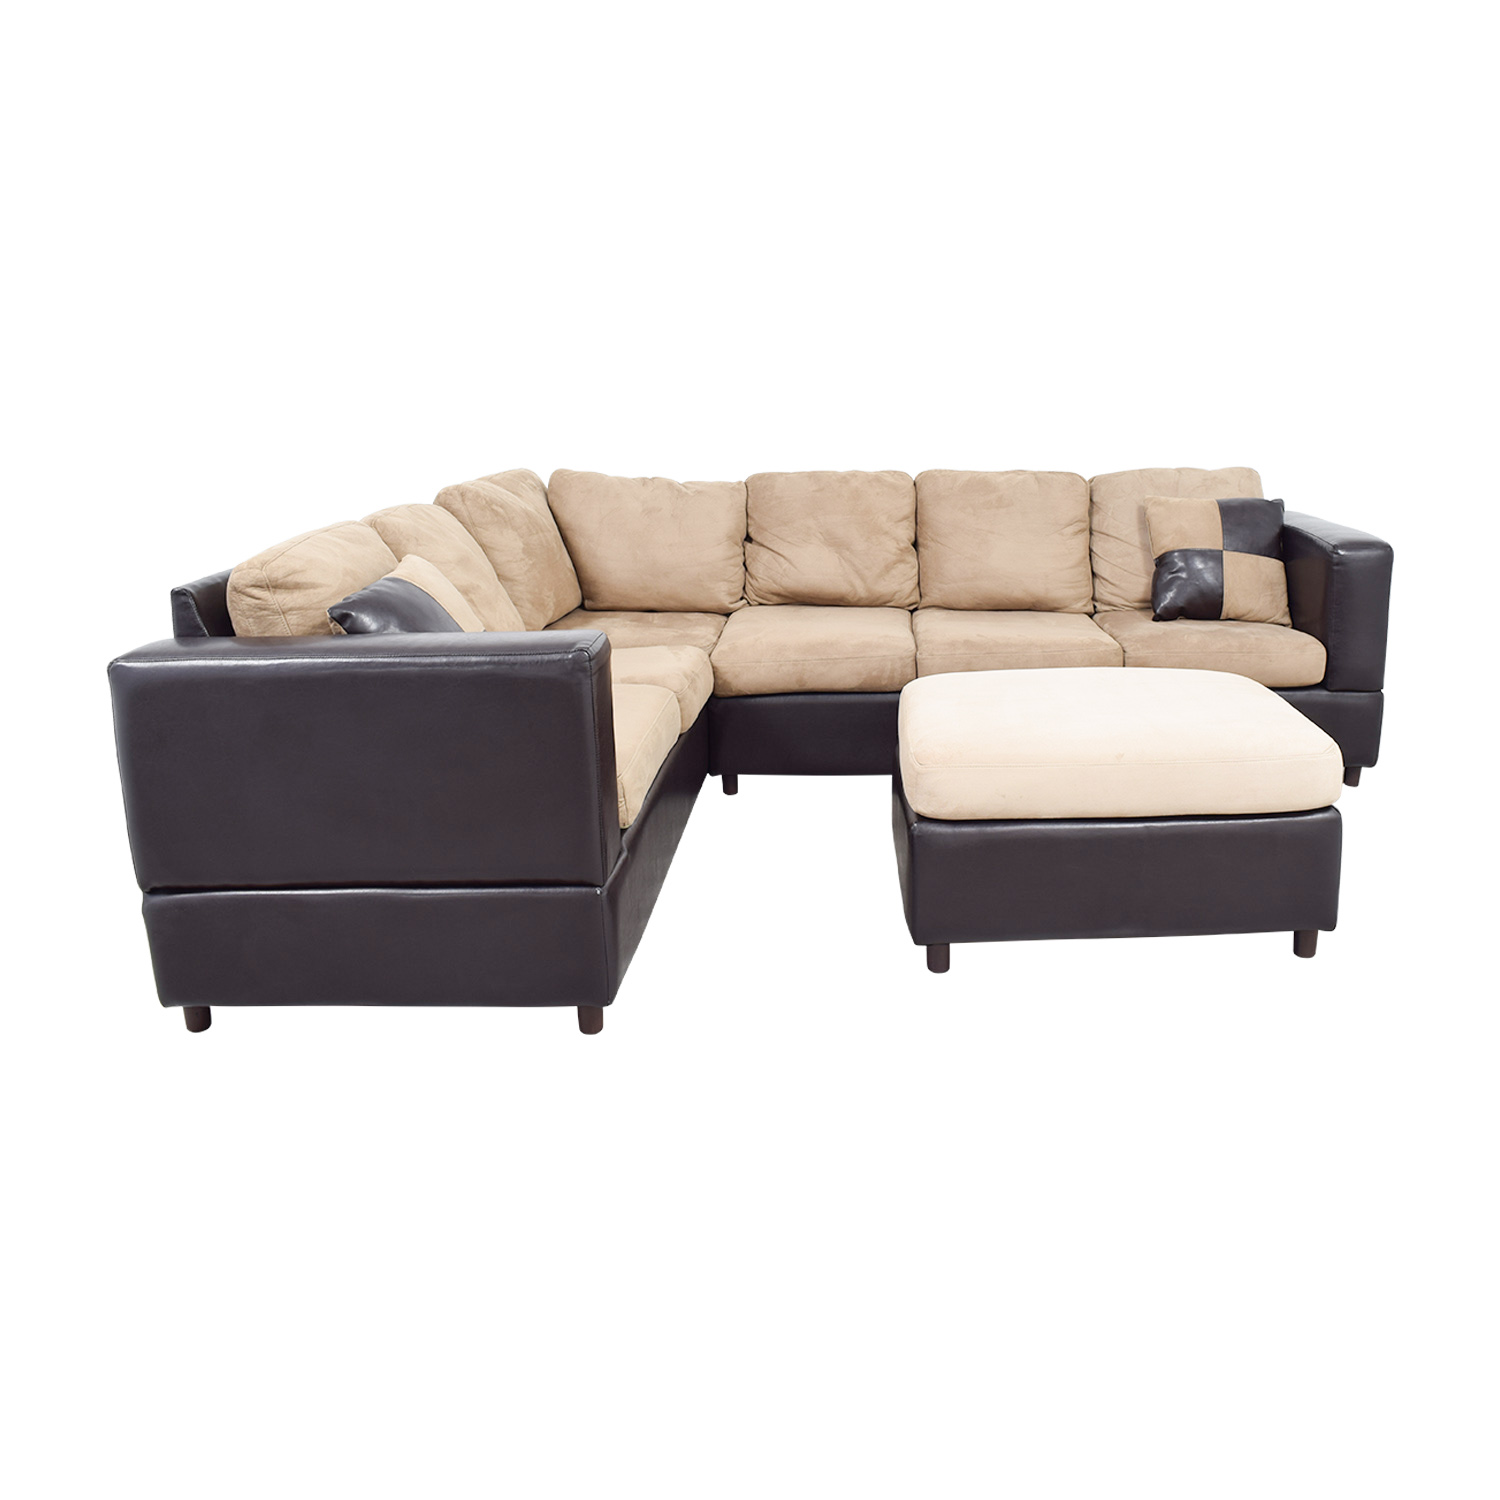 Jennifer Furniture Jennifer Furniture Brown Leather and Tan Micro-Suede L Sectional with Ottoman Sofas